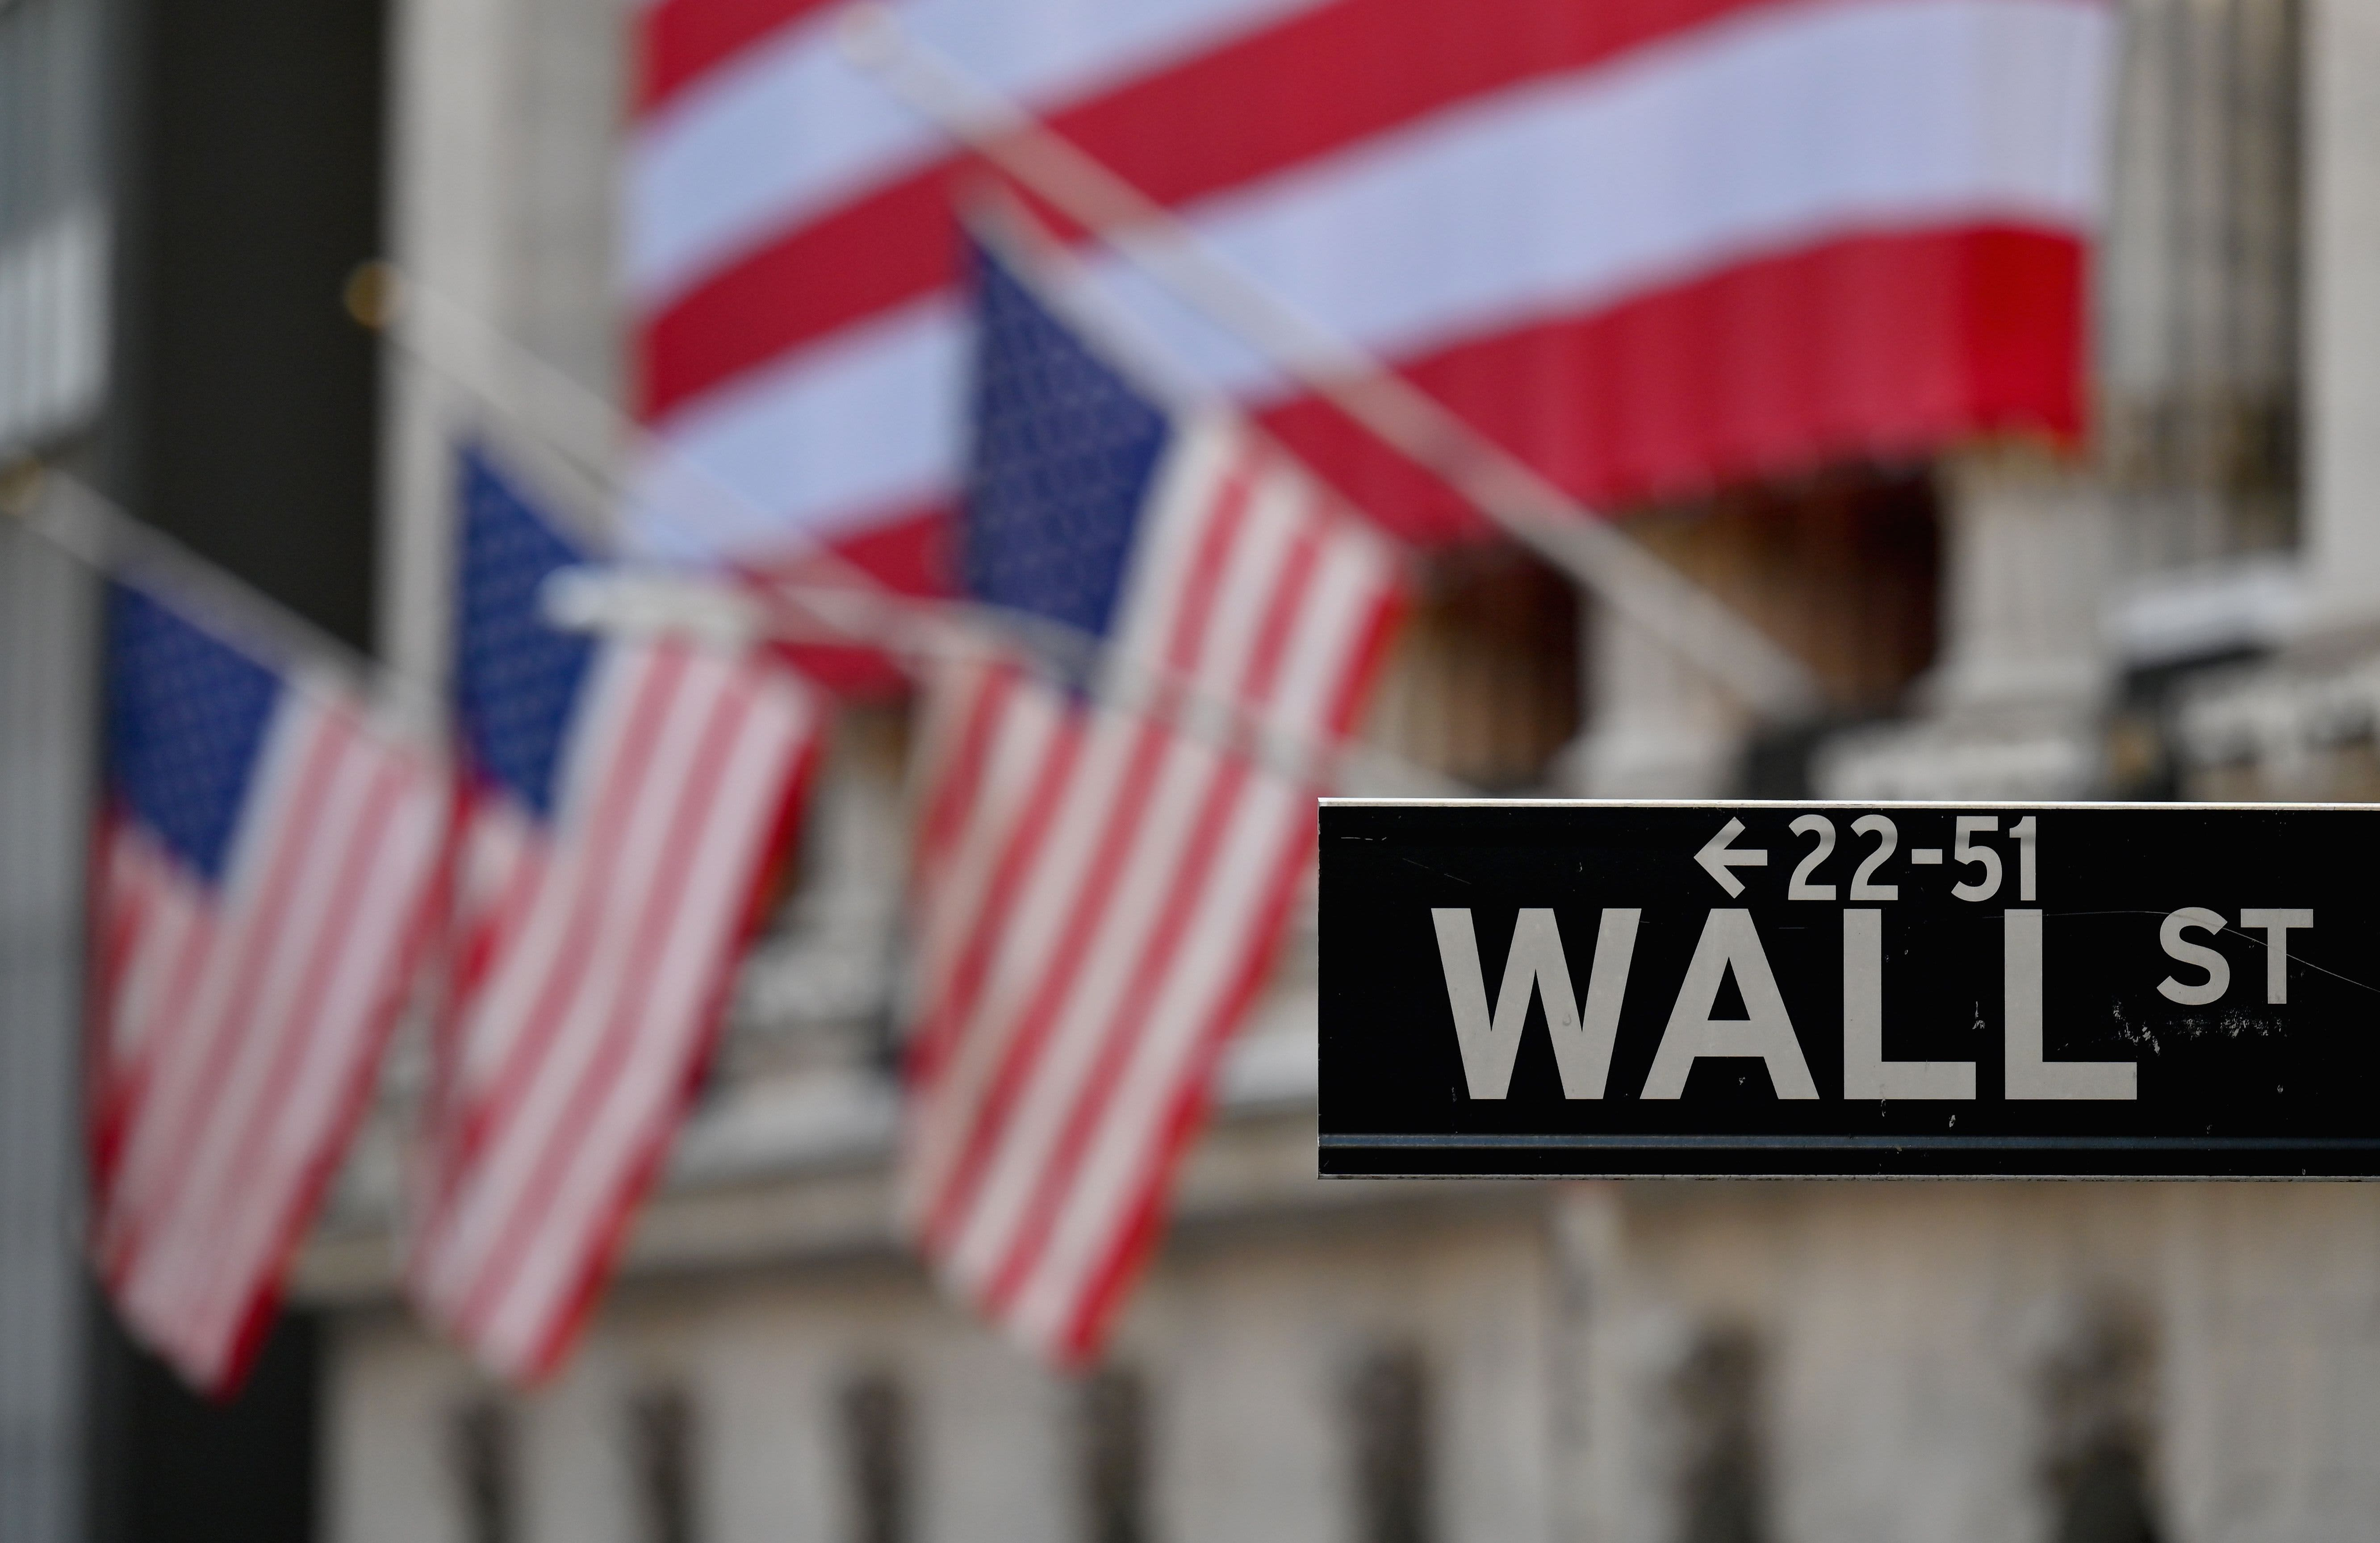 Jim Cramer on How to Approach Growth Stocks After Inflation Worries Shake Up Market – NBC Connecticut